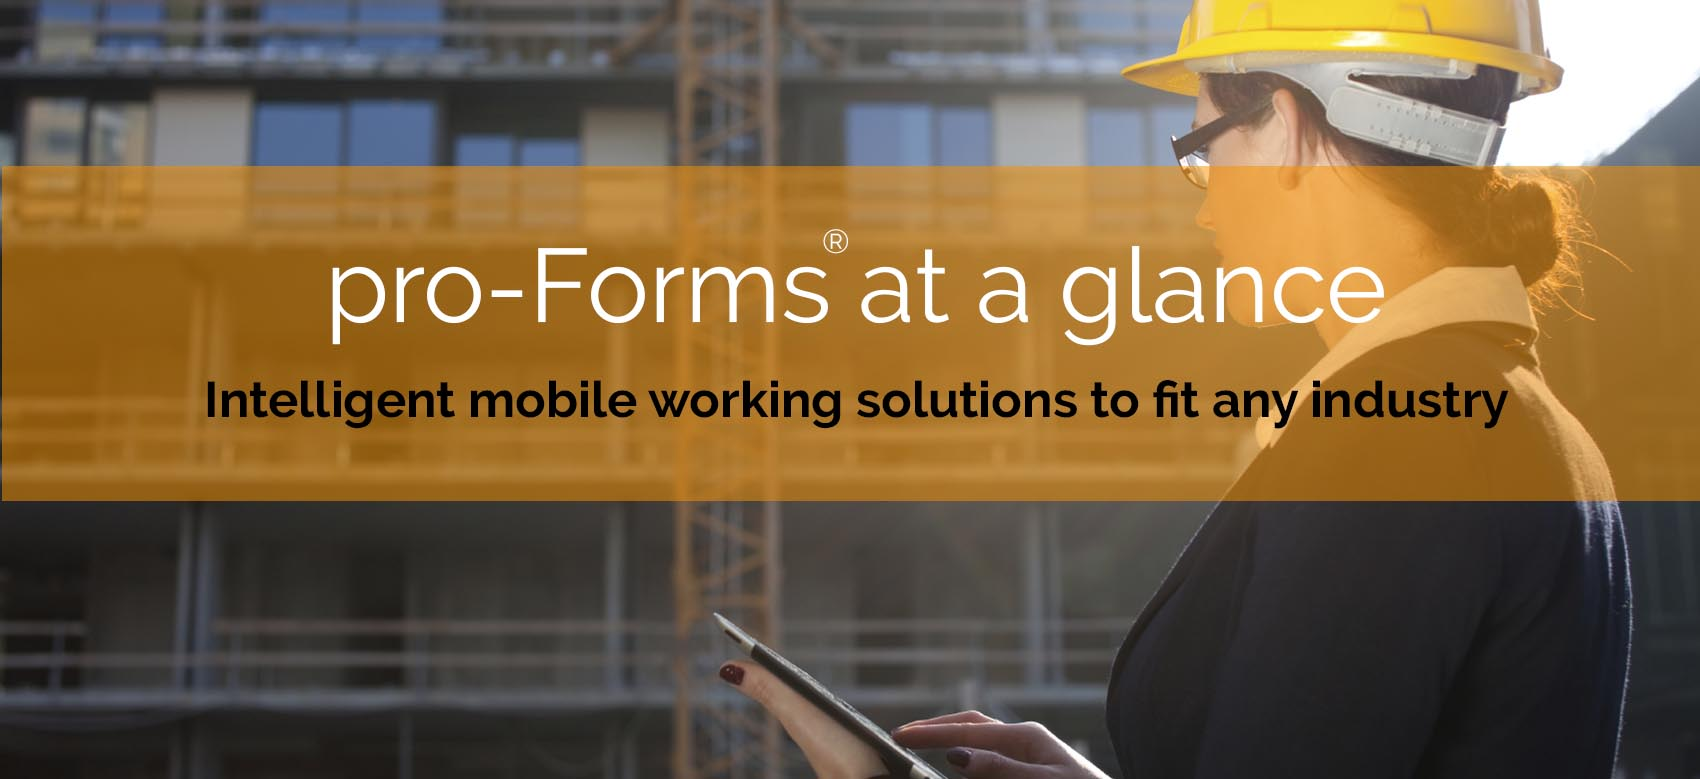 Intelligent mobile working solutions to fit any industry